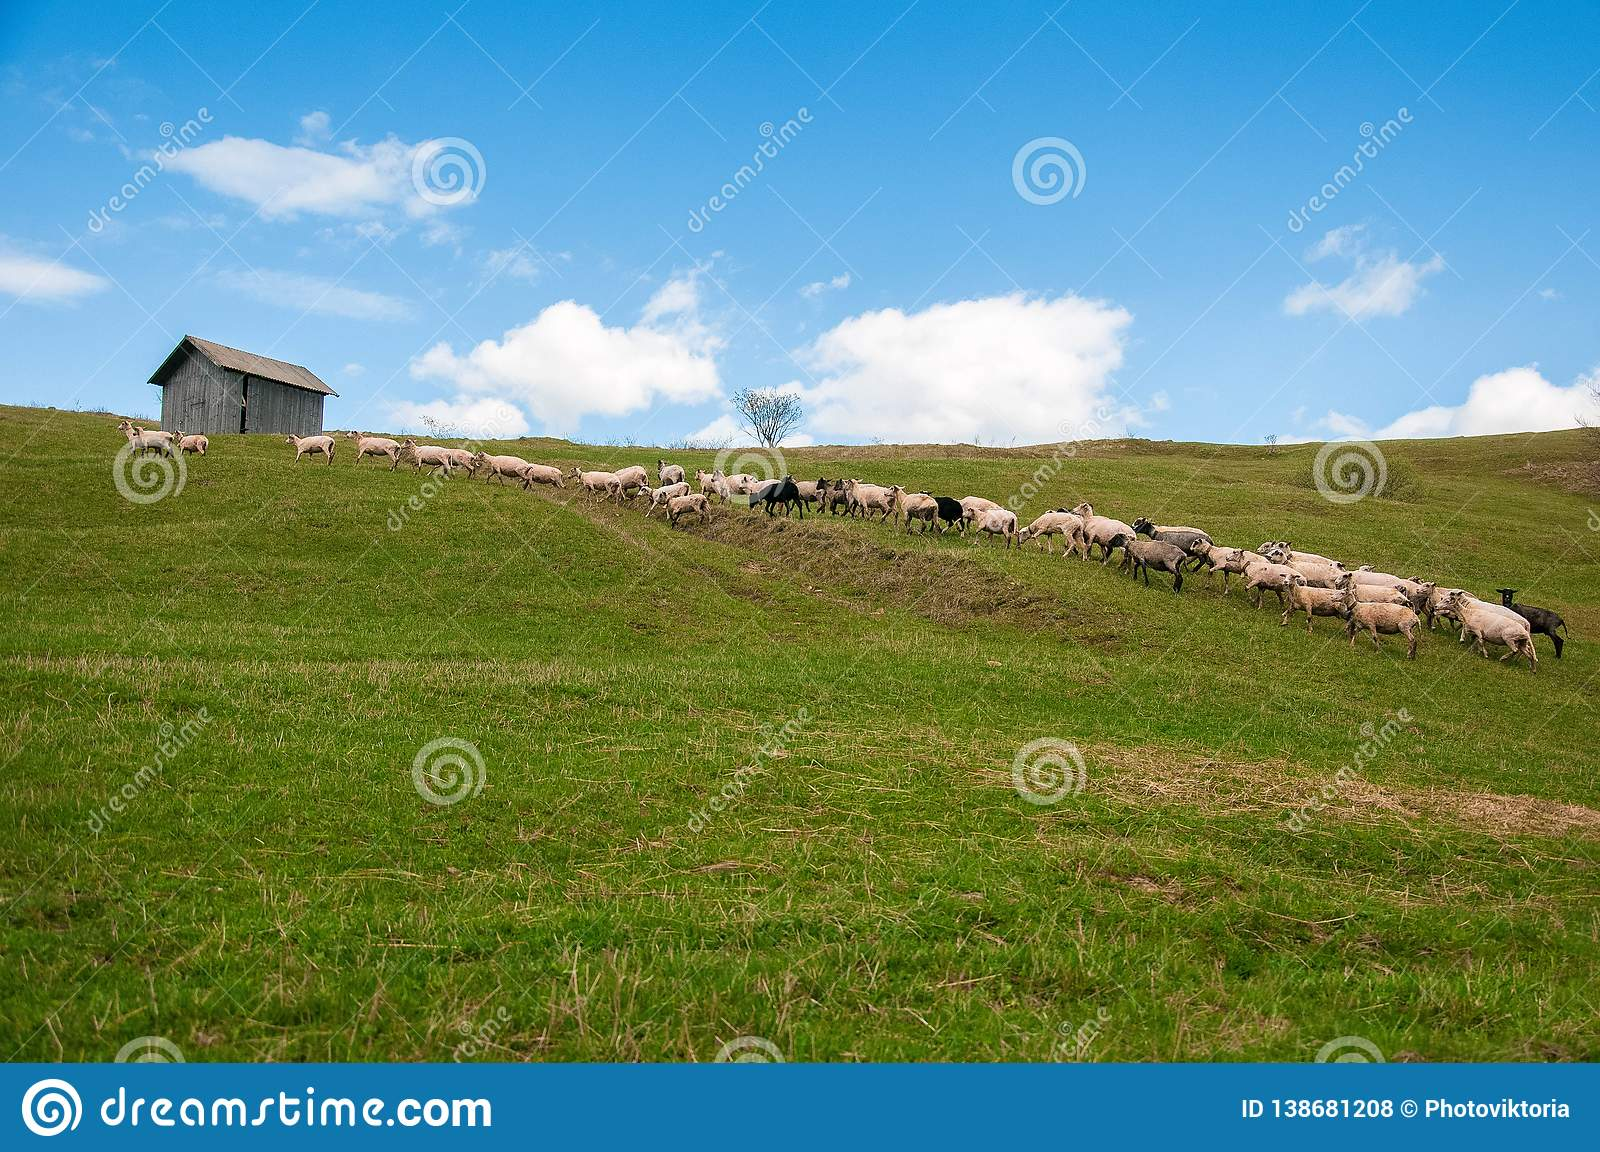 Flock of sheep in the carpathians.